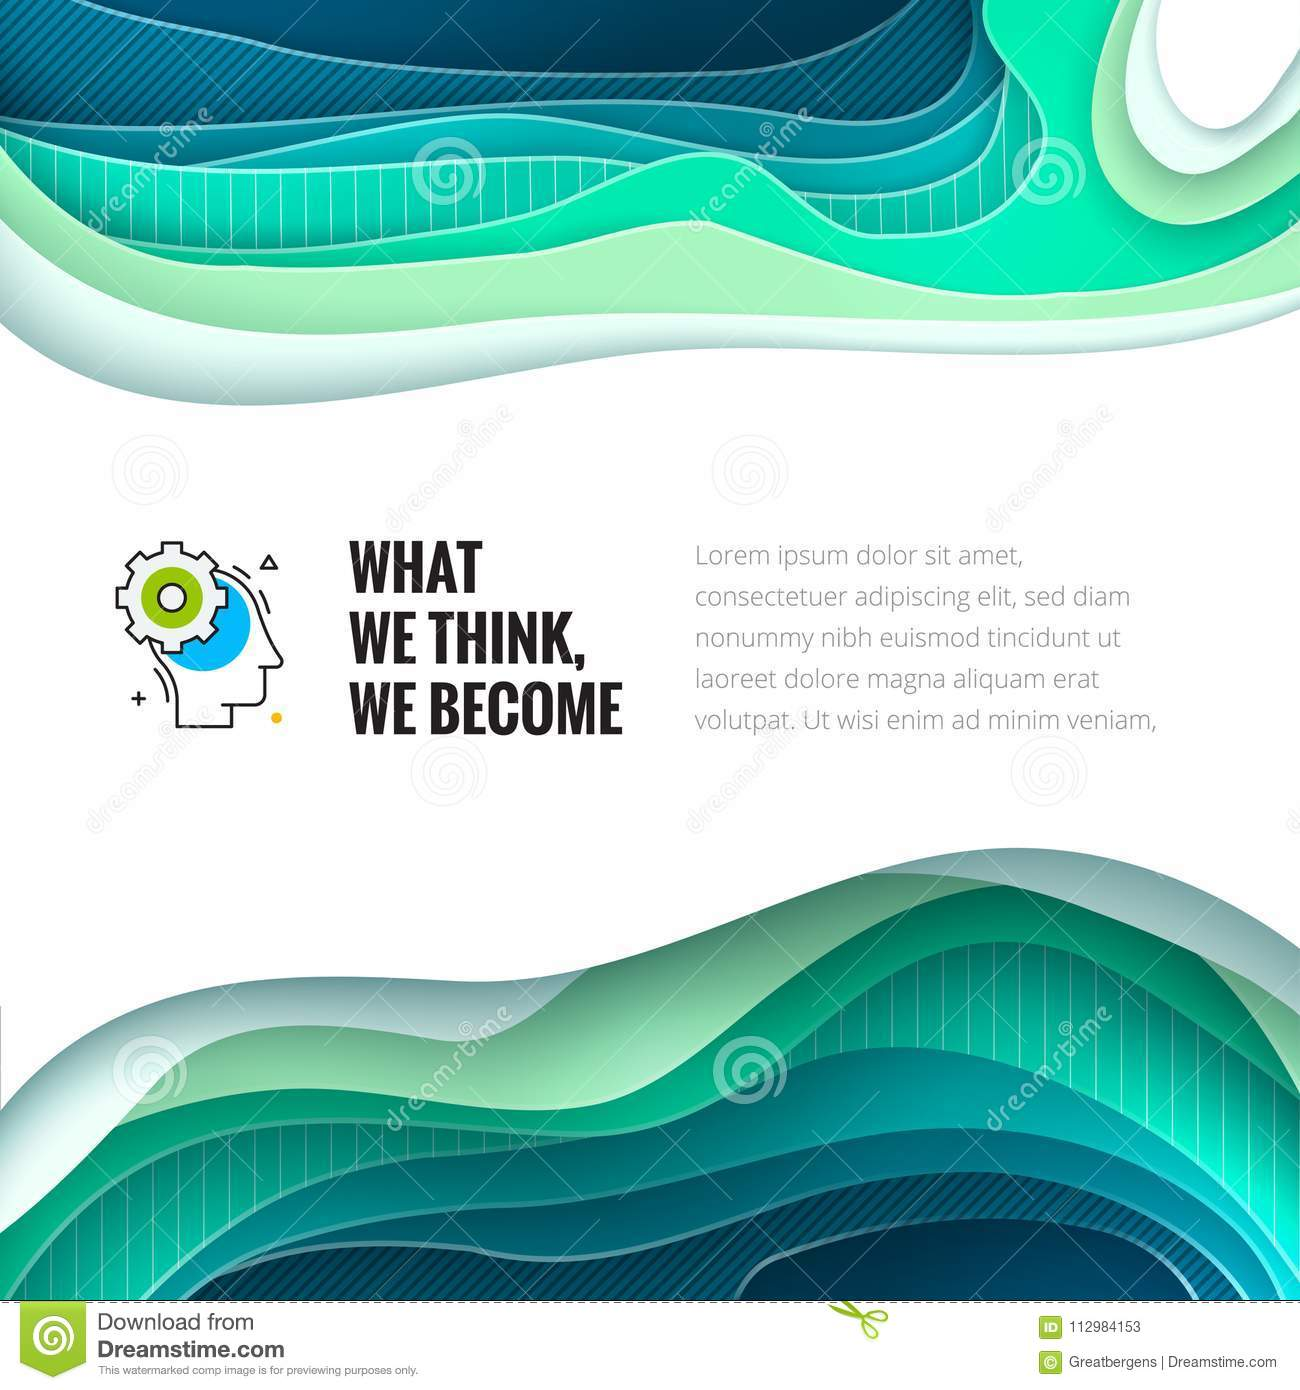 Paper cut concept. Paper carve abstract background for card, banner, brochure or flyer design in teal, green, blue